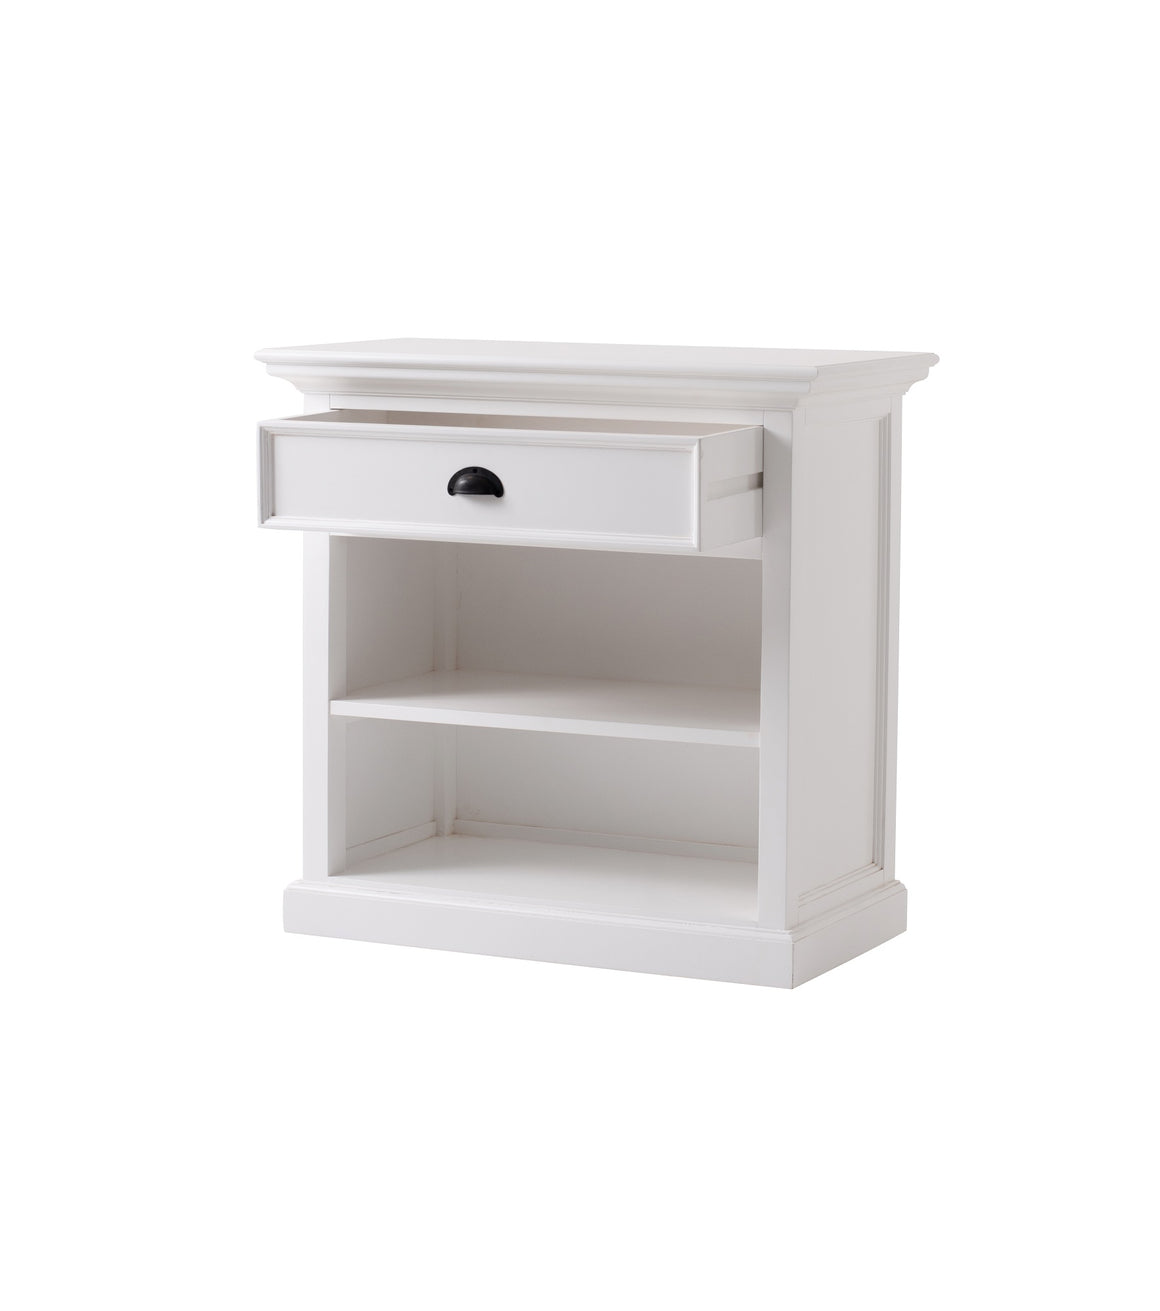 Halifax grand T764L Bedside Table With Shelves